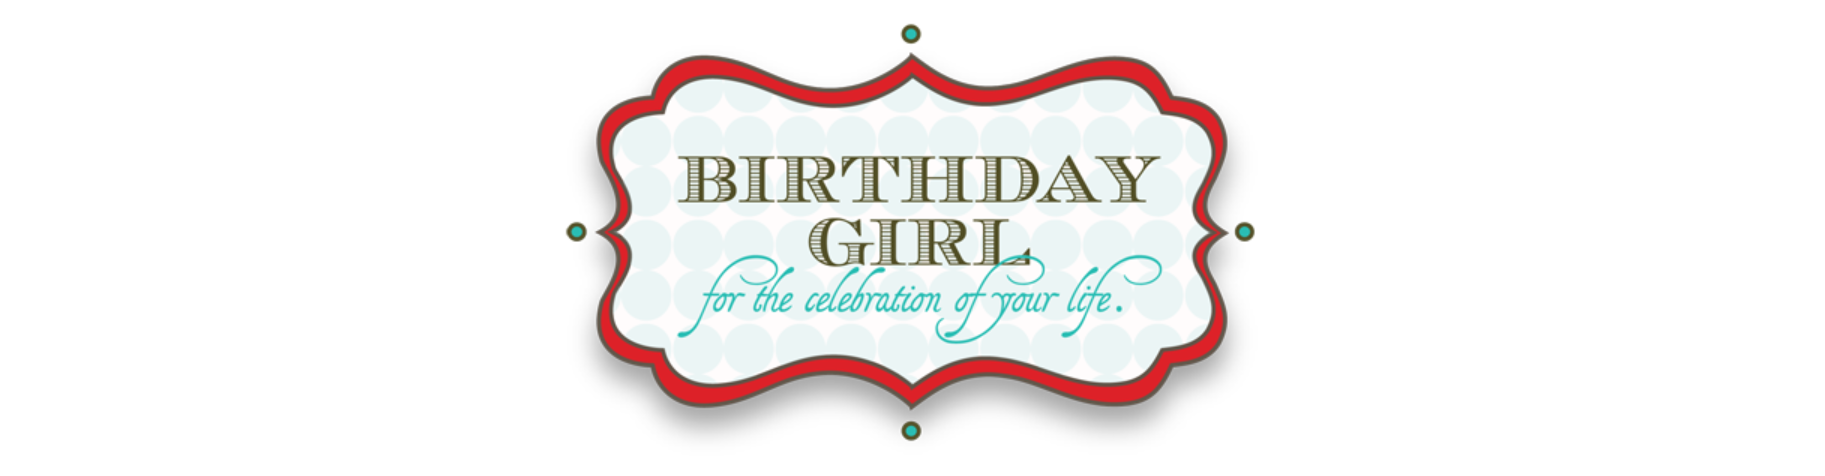 birthdaygirlblog